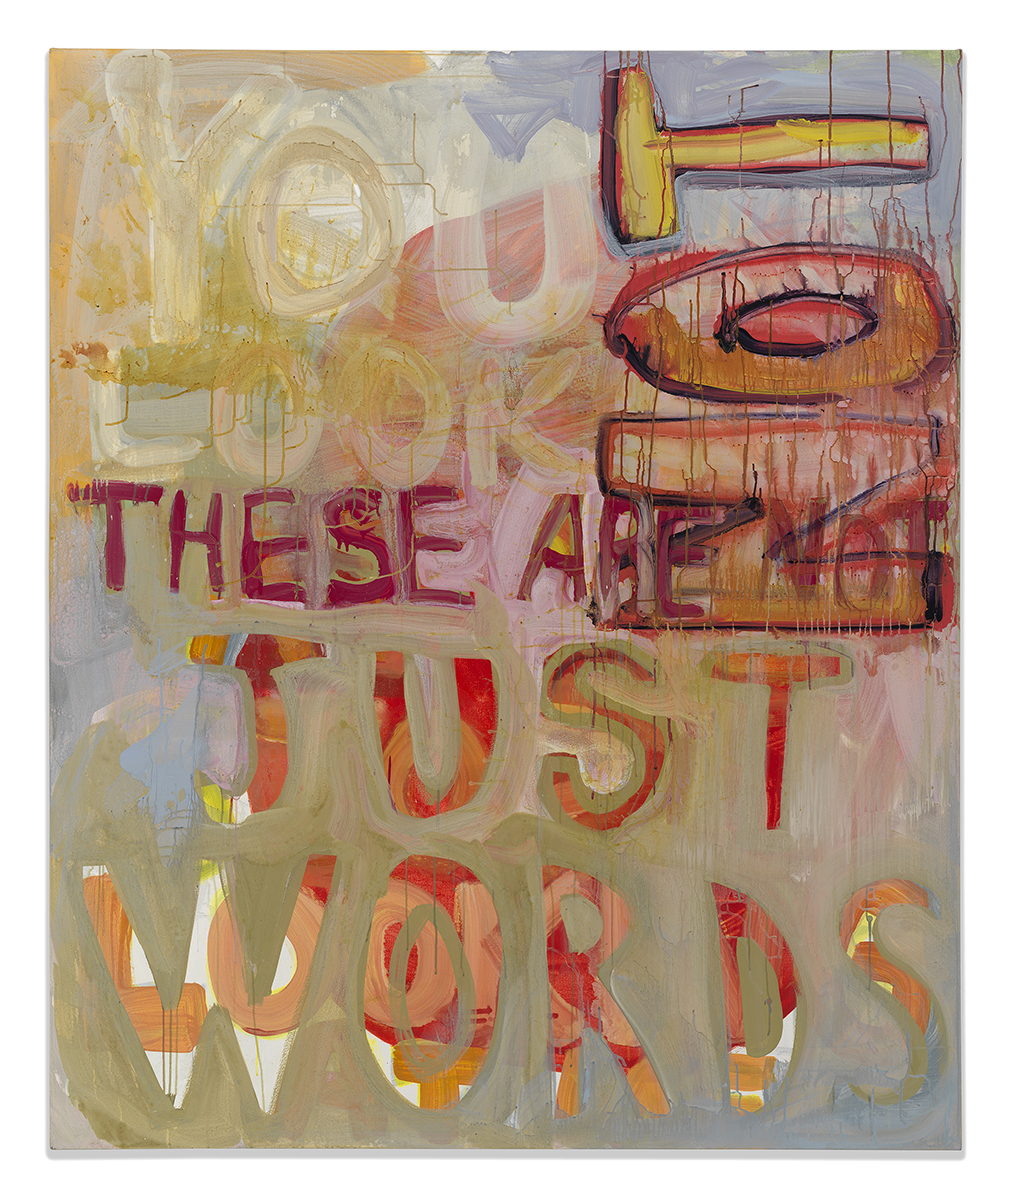 JUST WORDS , 2016, acrylic on canvas, 6' x 5'